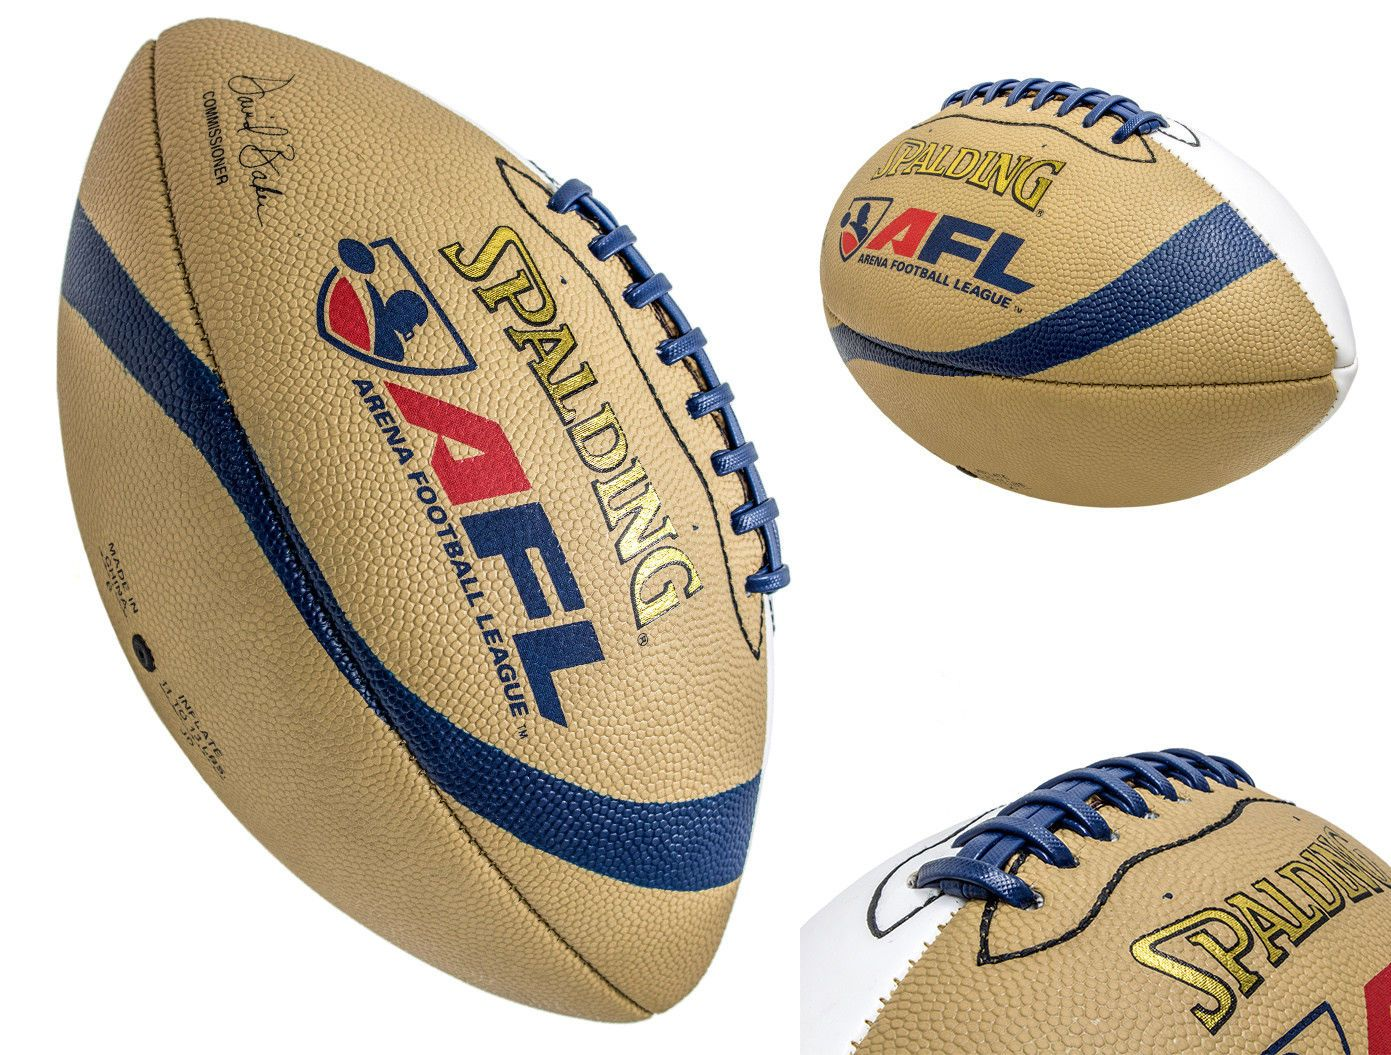 2aa51ee3c9a Footballs 21220  Spalding Afl Arena Football League Autograph Leather Full Size  Football -  BUY IT NOW ONLY   18.99 on  eBay  footballs  spalding  arena ...